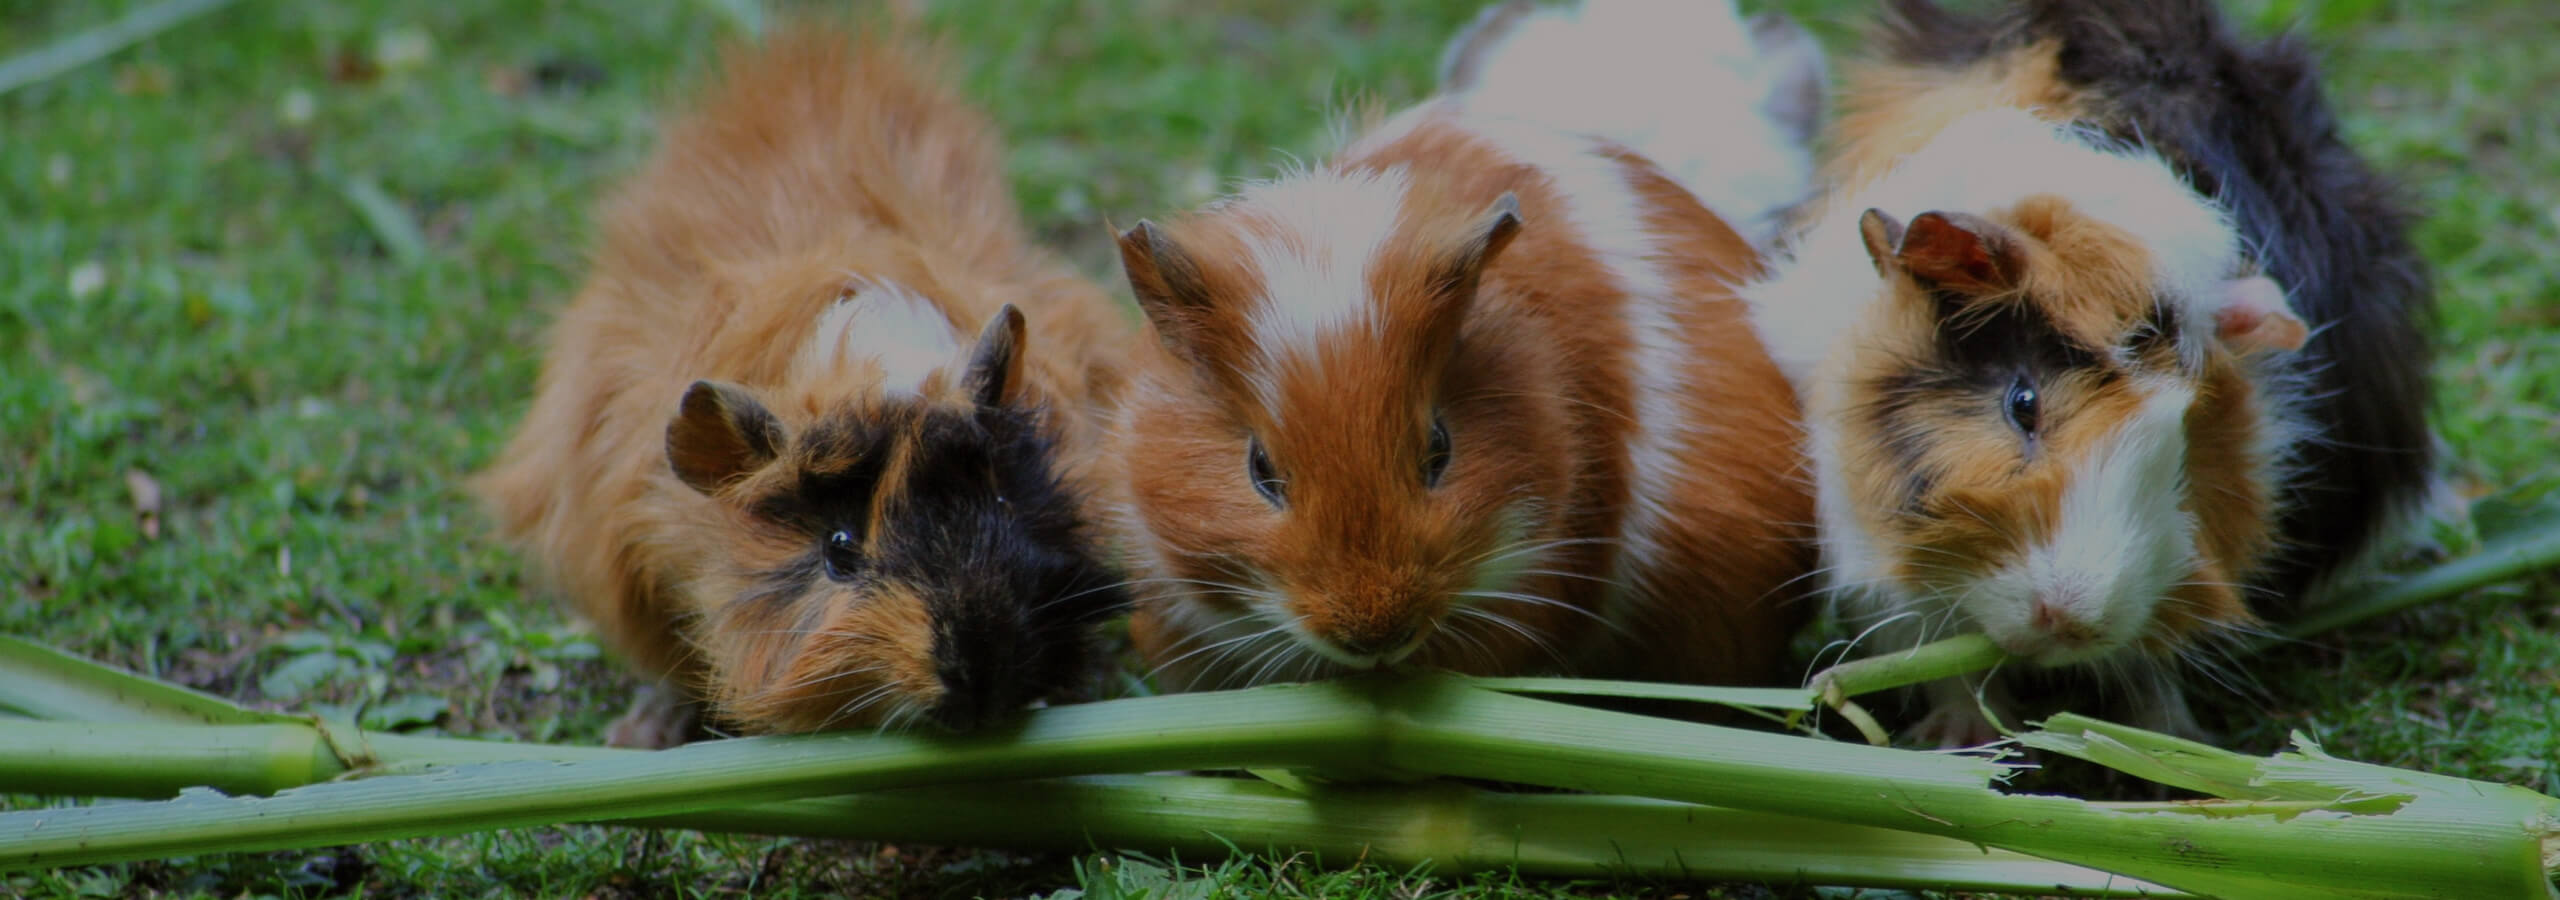 Obesity in Pets and how to manage it